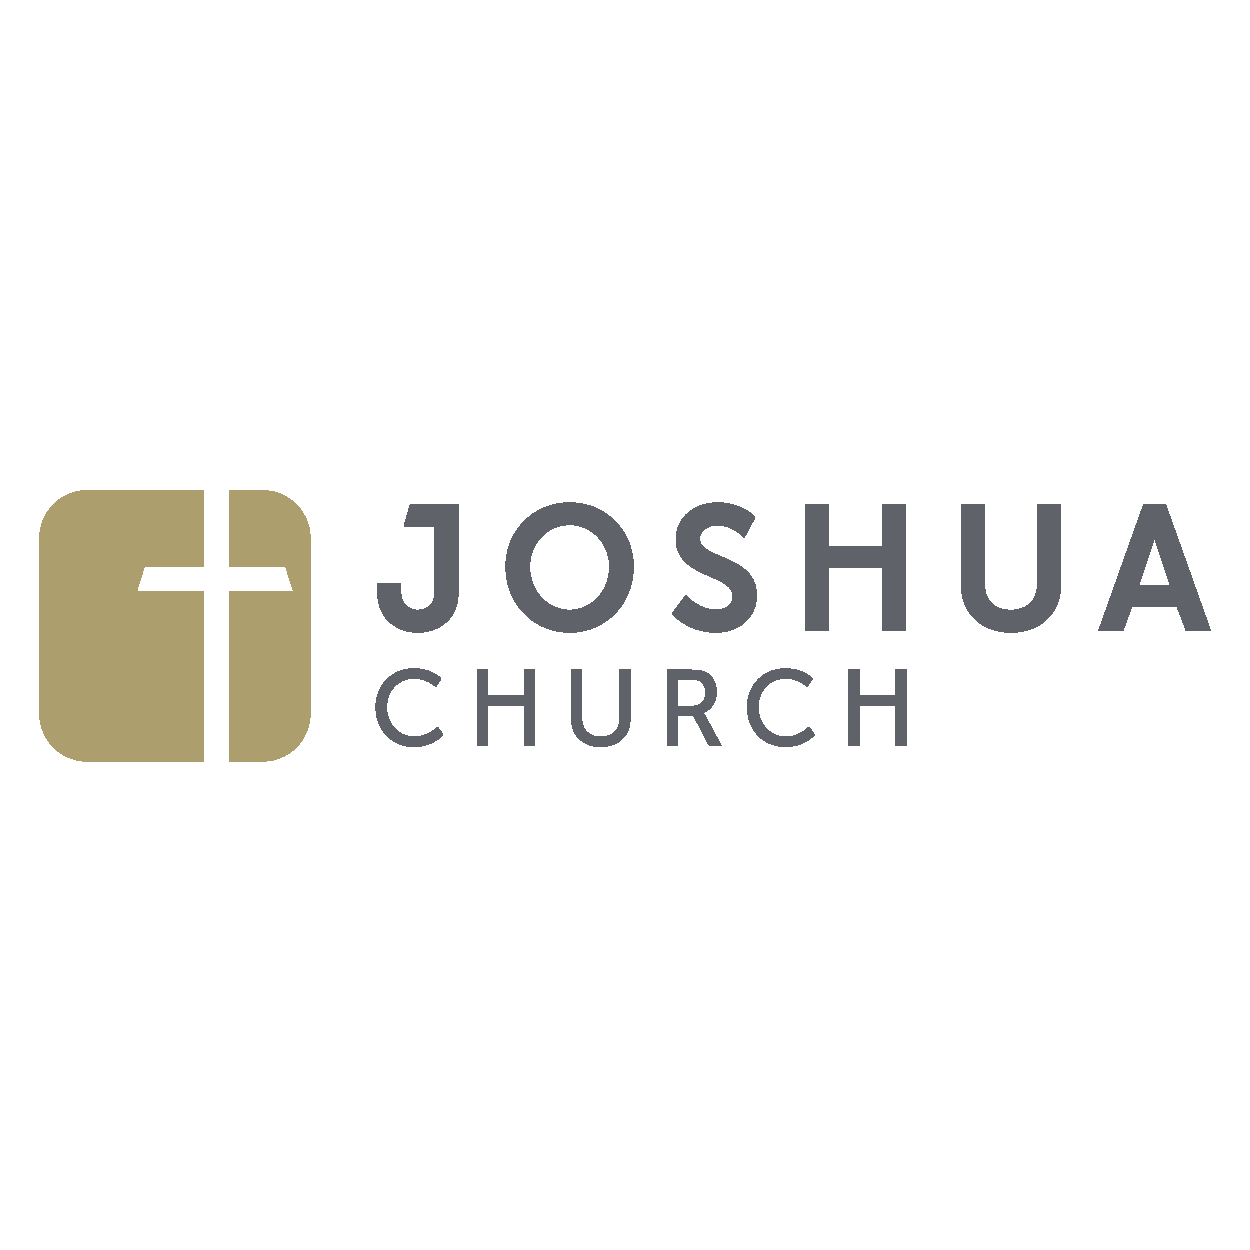 Joshua Church